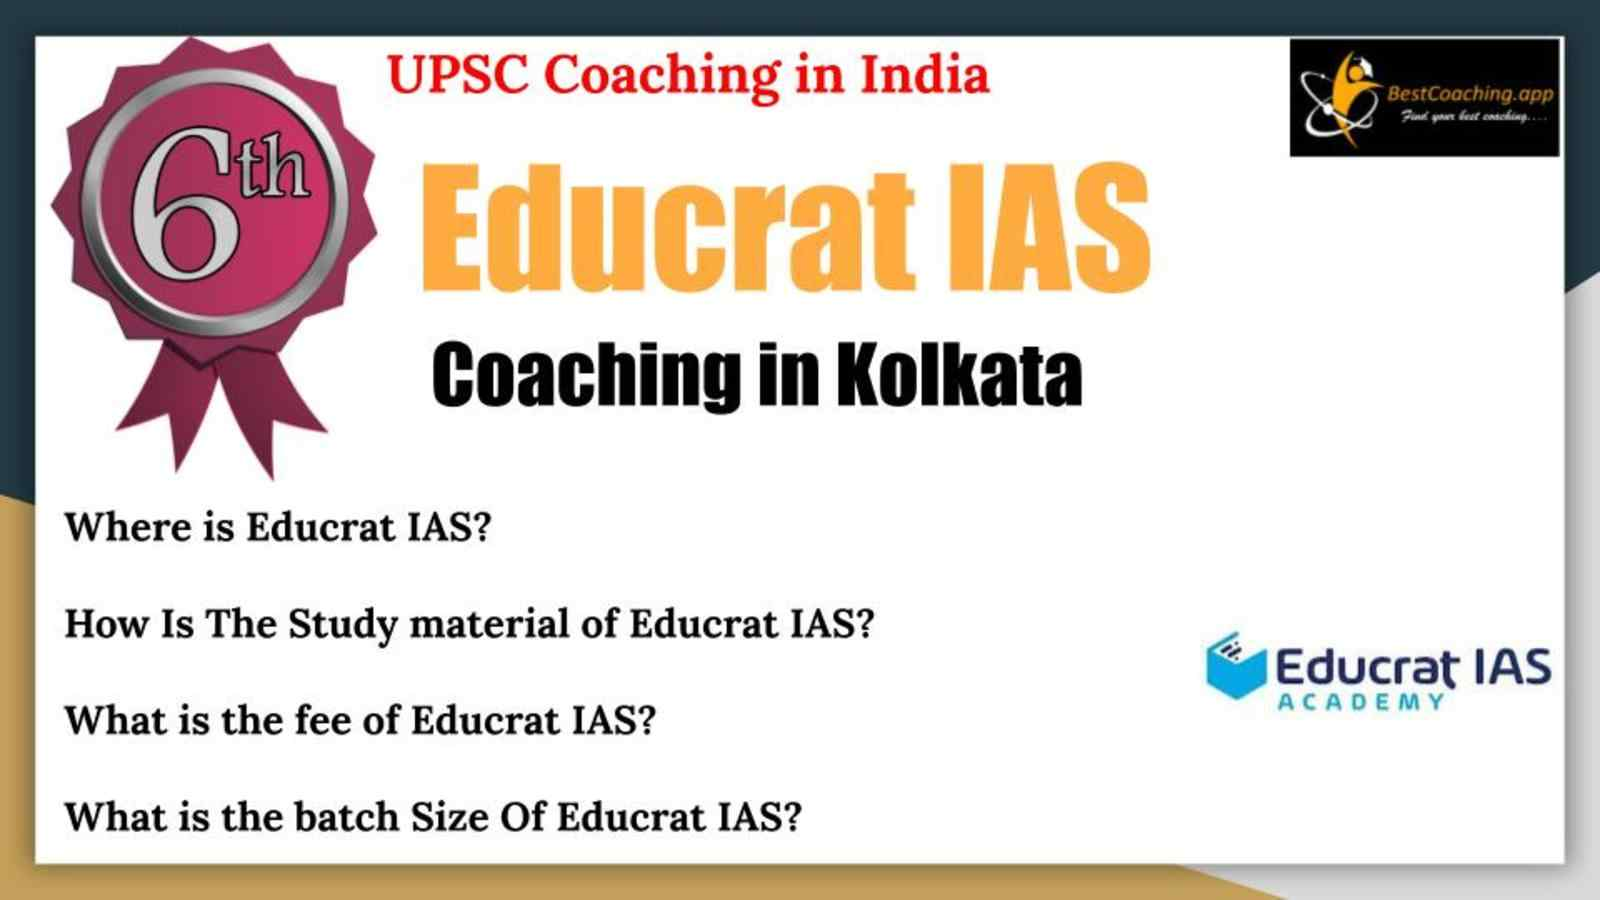 Top UPSC Coaching In India